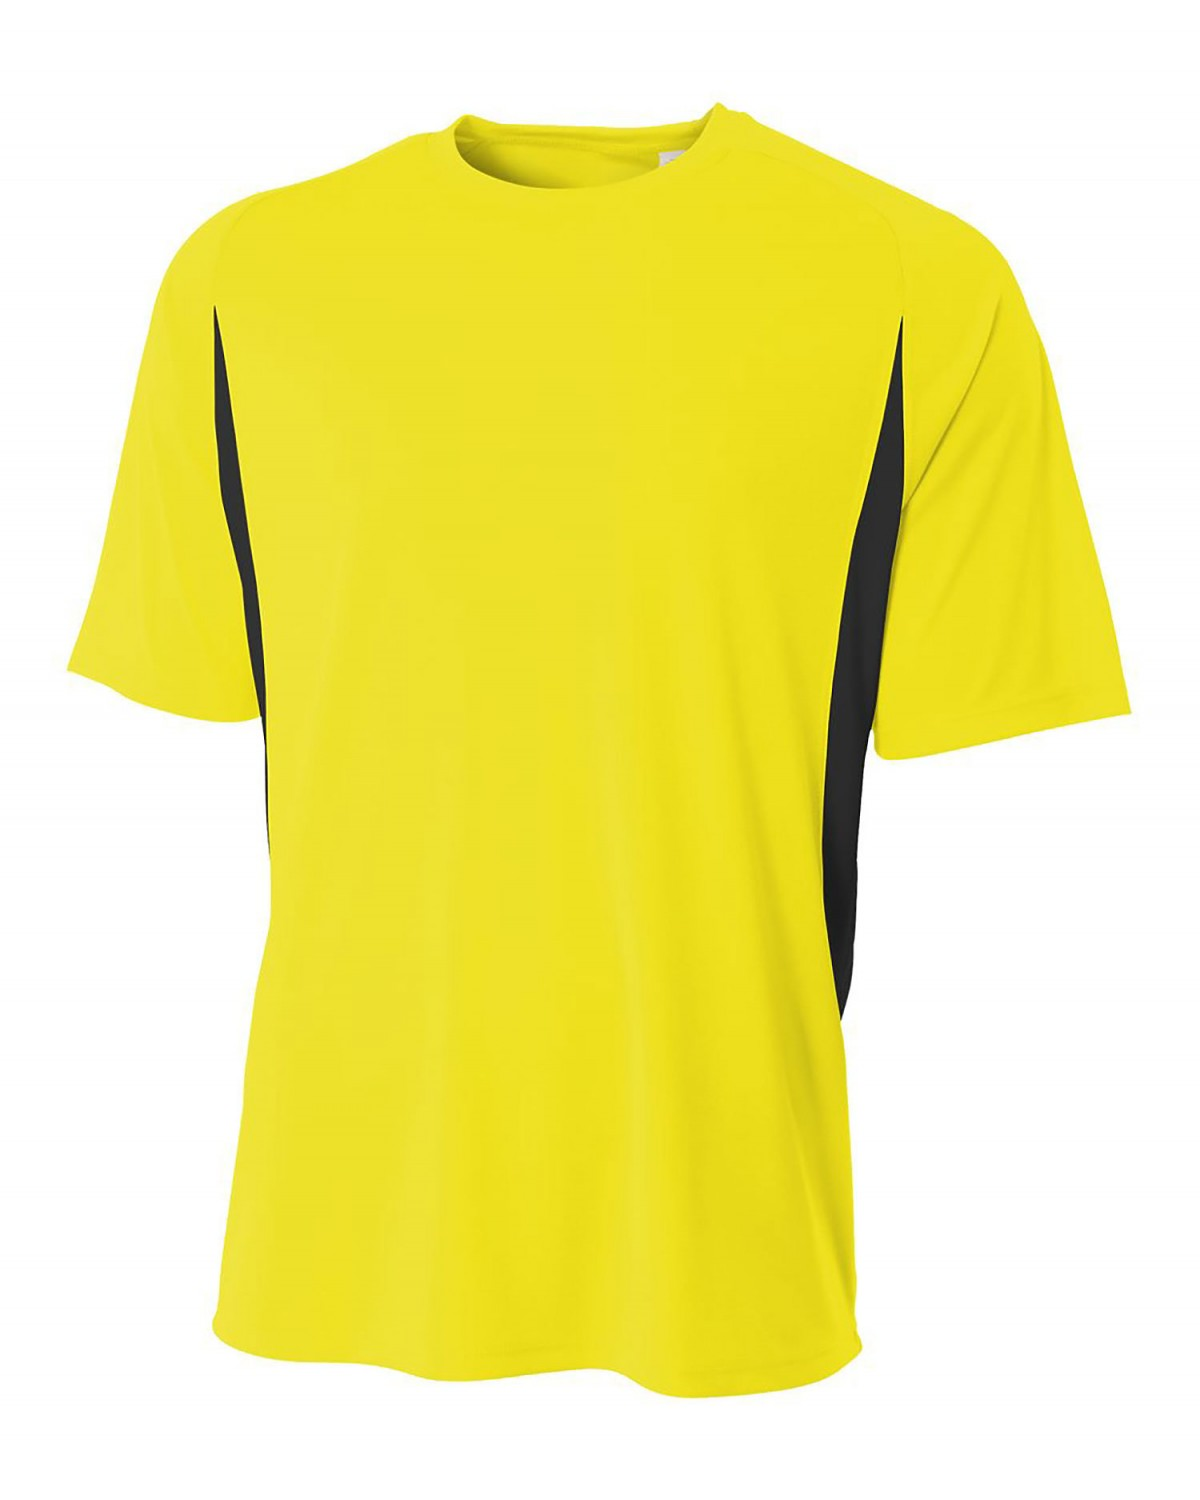 A4NB3181 A4 Safety Yellow/Black